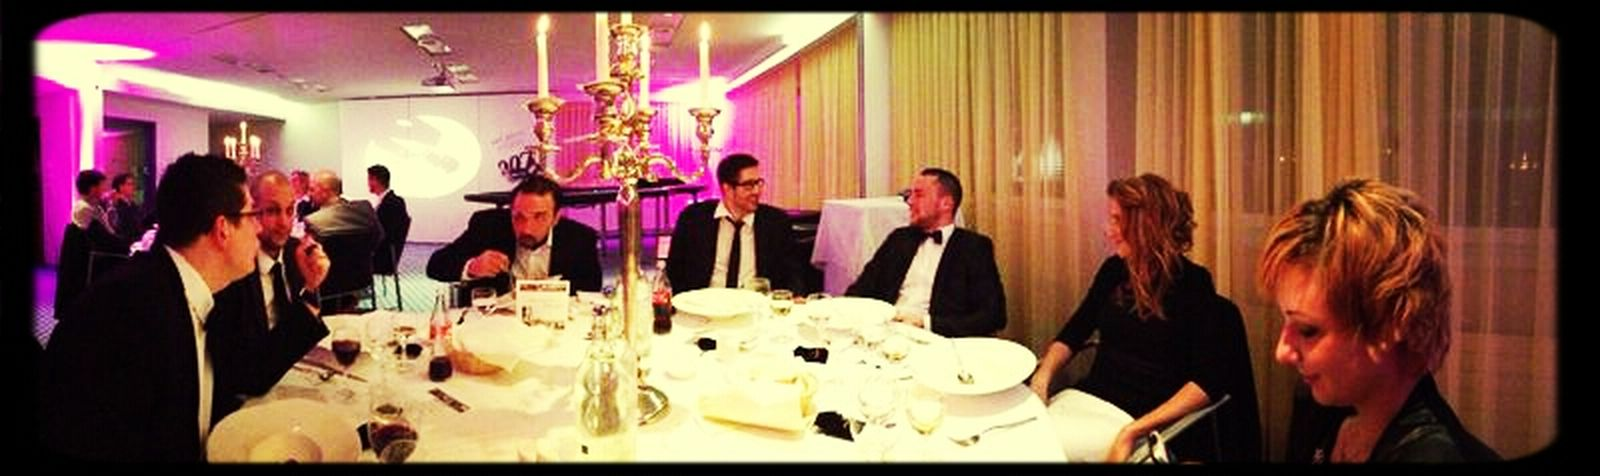 Party People Casino Royale Best Team Ever